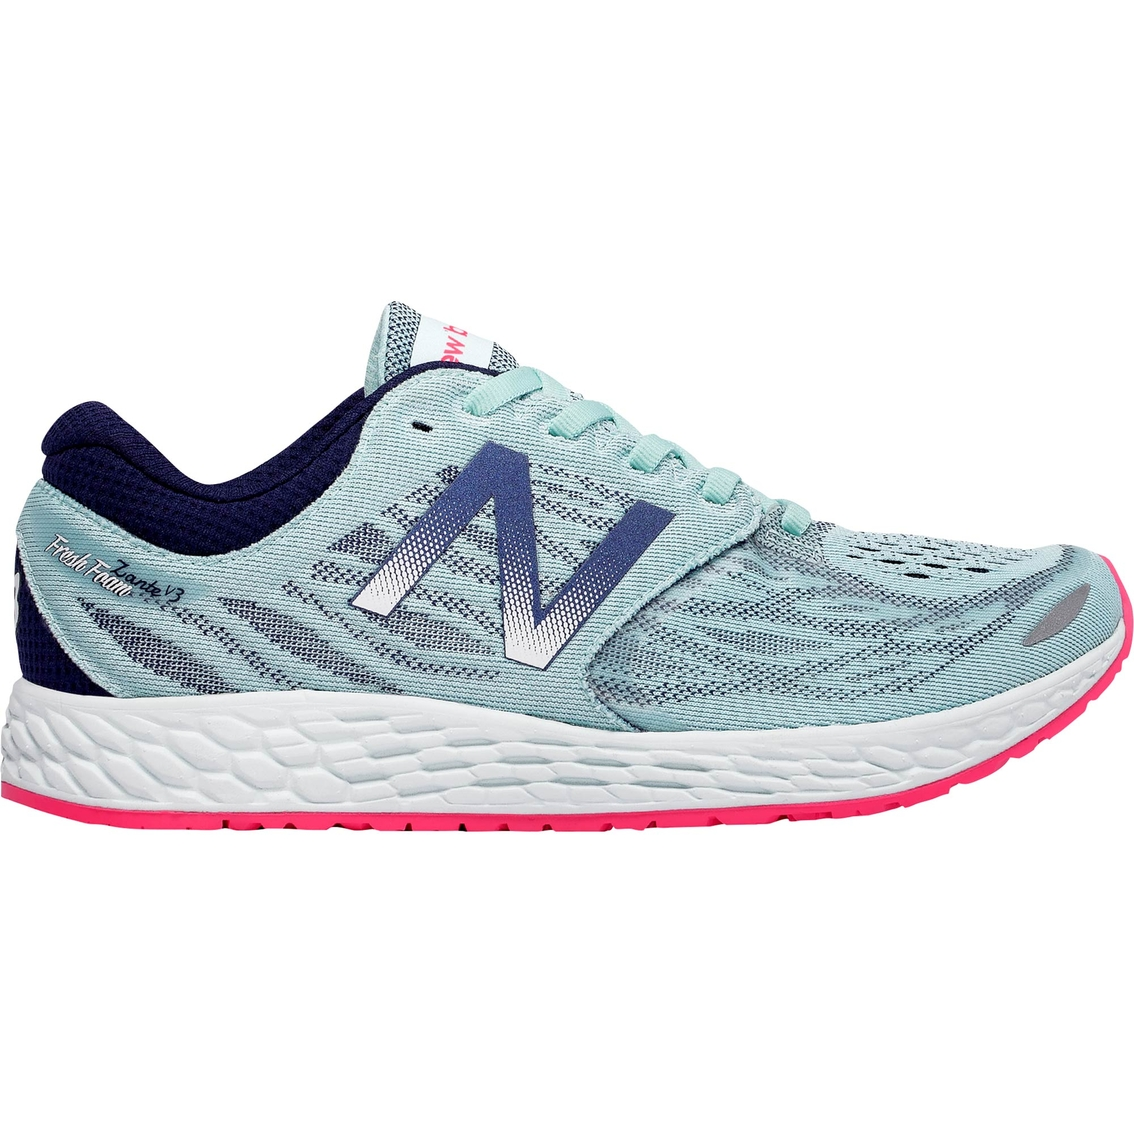 Tierras altas Polvoriento accesorios  New Balance Women's Wzantbb3 Running Shoes | Running | Shoes ...